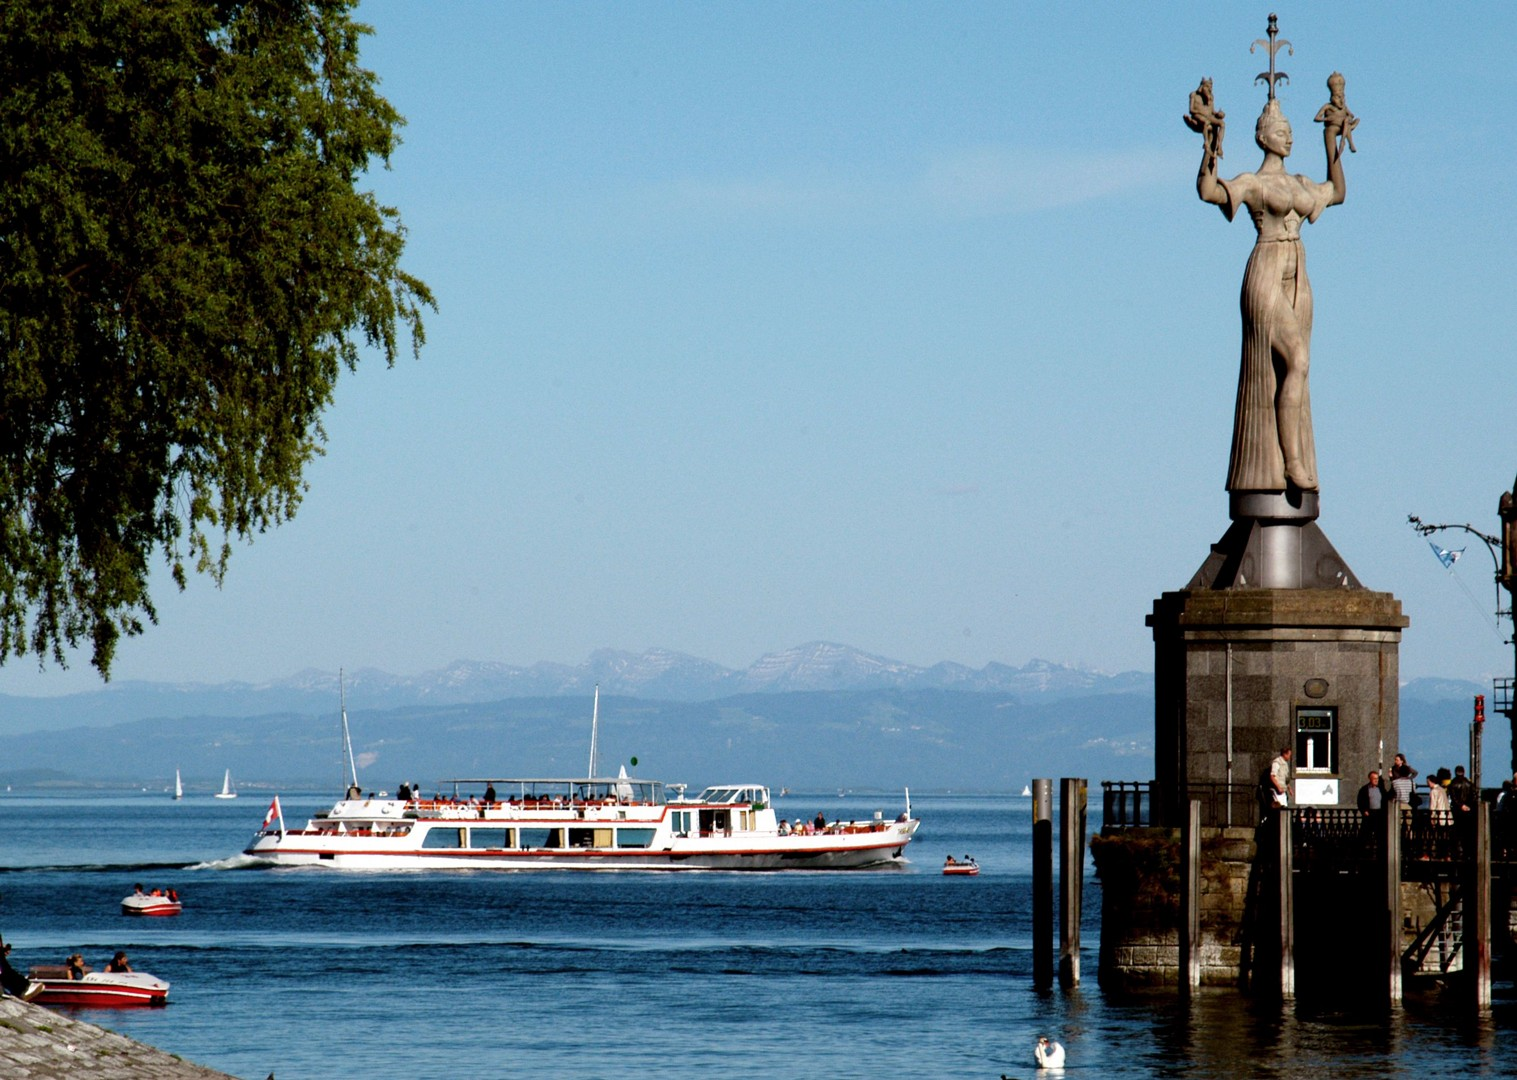 Constance 13.jpg - Germany, Austria and Switzerland - Lake Constance - Supported Leisure Cycling Holiday - Leisure Cycling